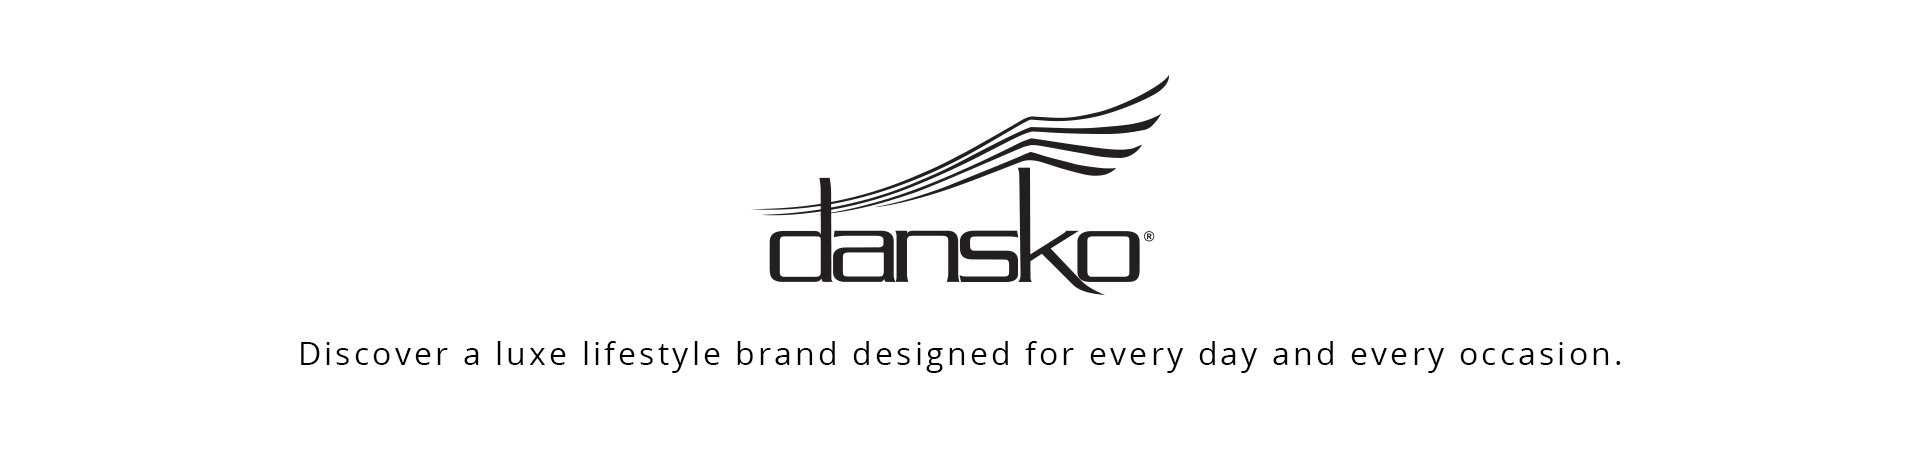 Dansko. Discover a luxe lifestyle brand designed for every day and every ocassion.